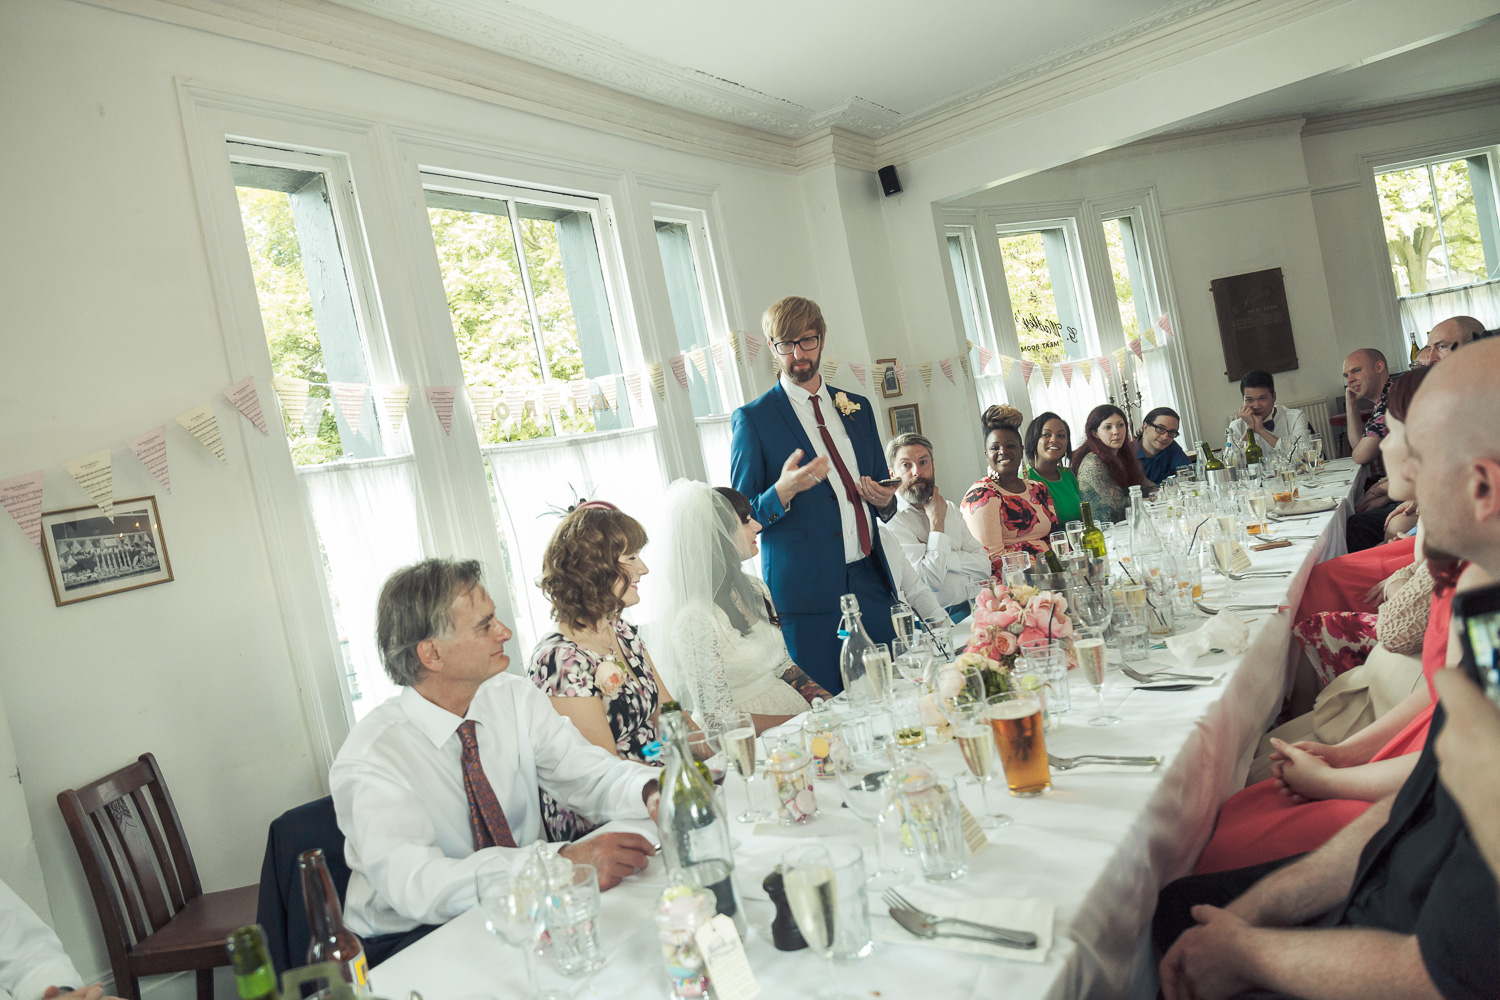 burgh-house-hampstead-north-london-wedding-0252.jpg